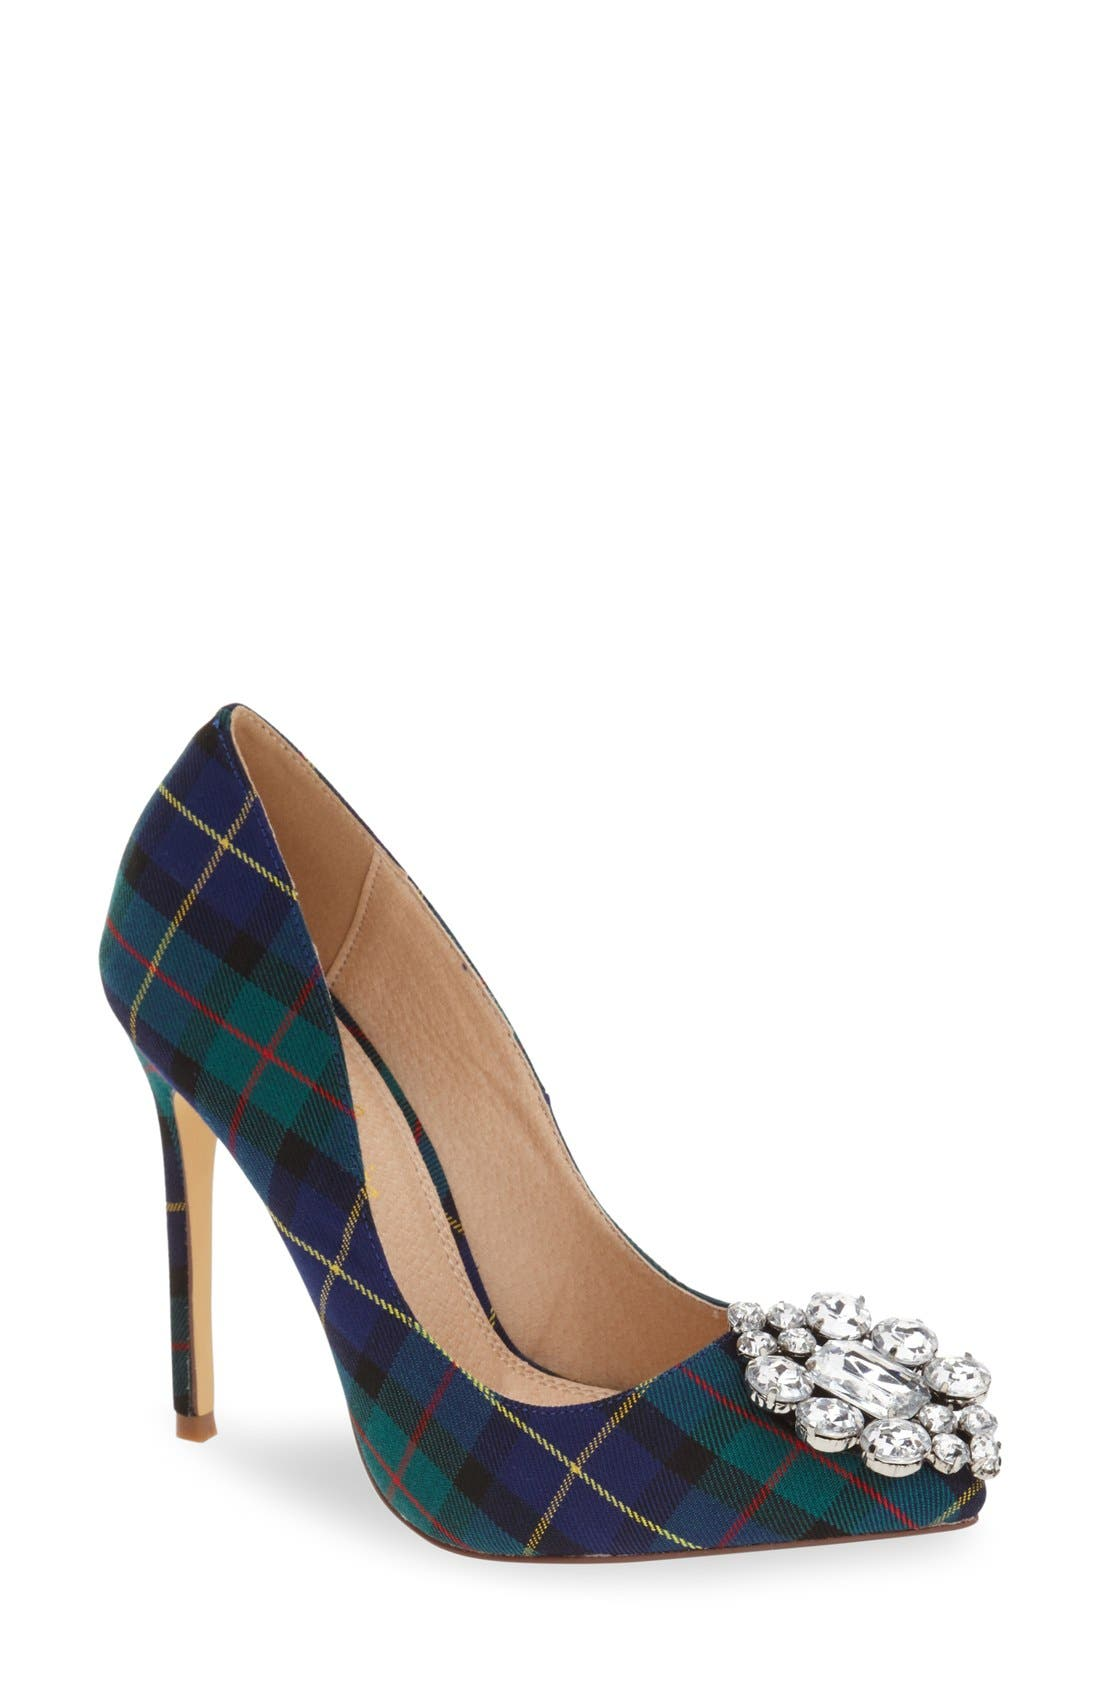 Main Image - Lauren Lorraine Crystal Pointy Toe Pump (Women)